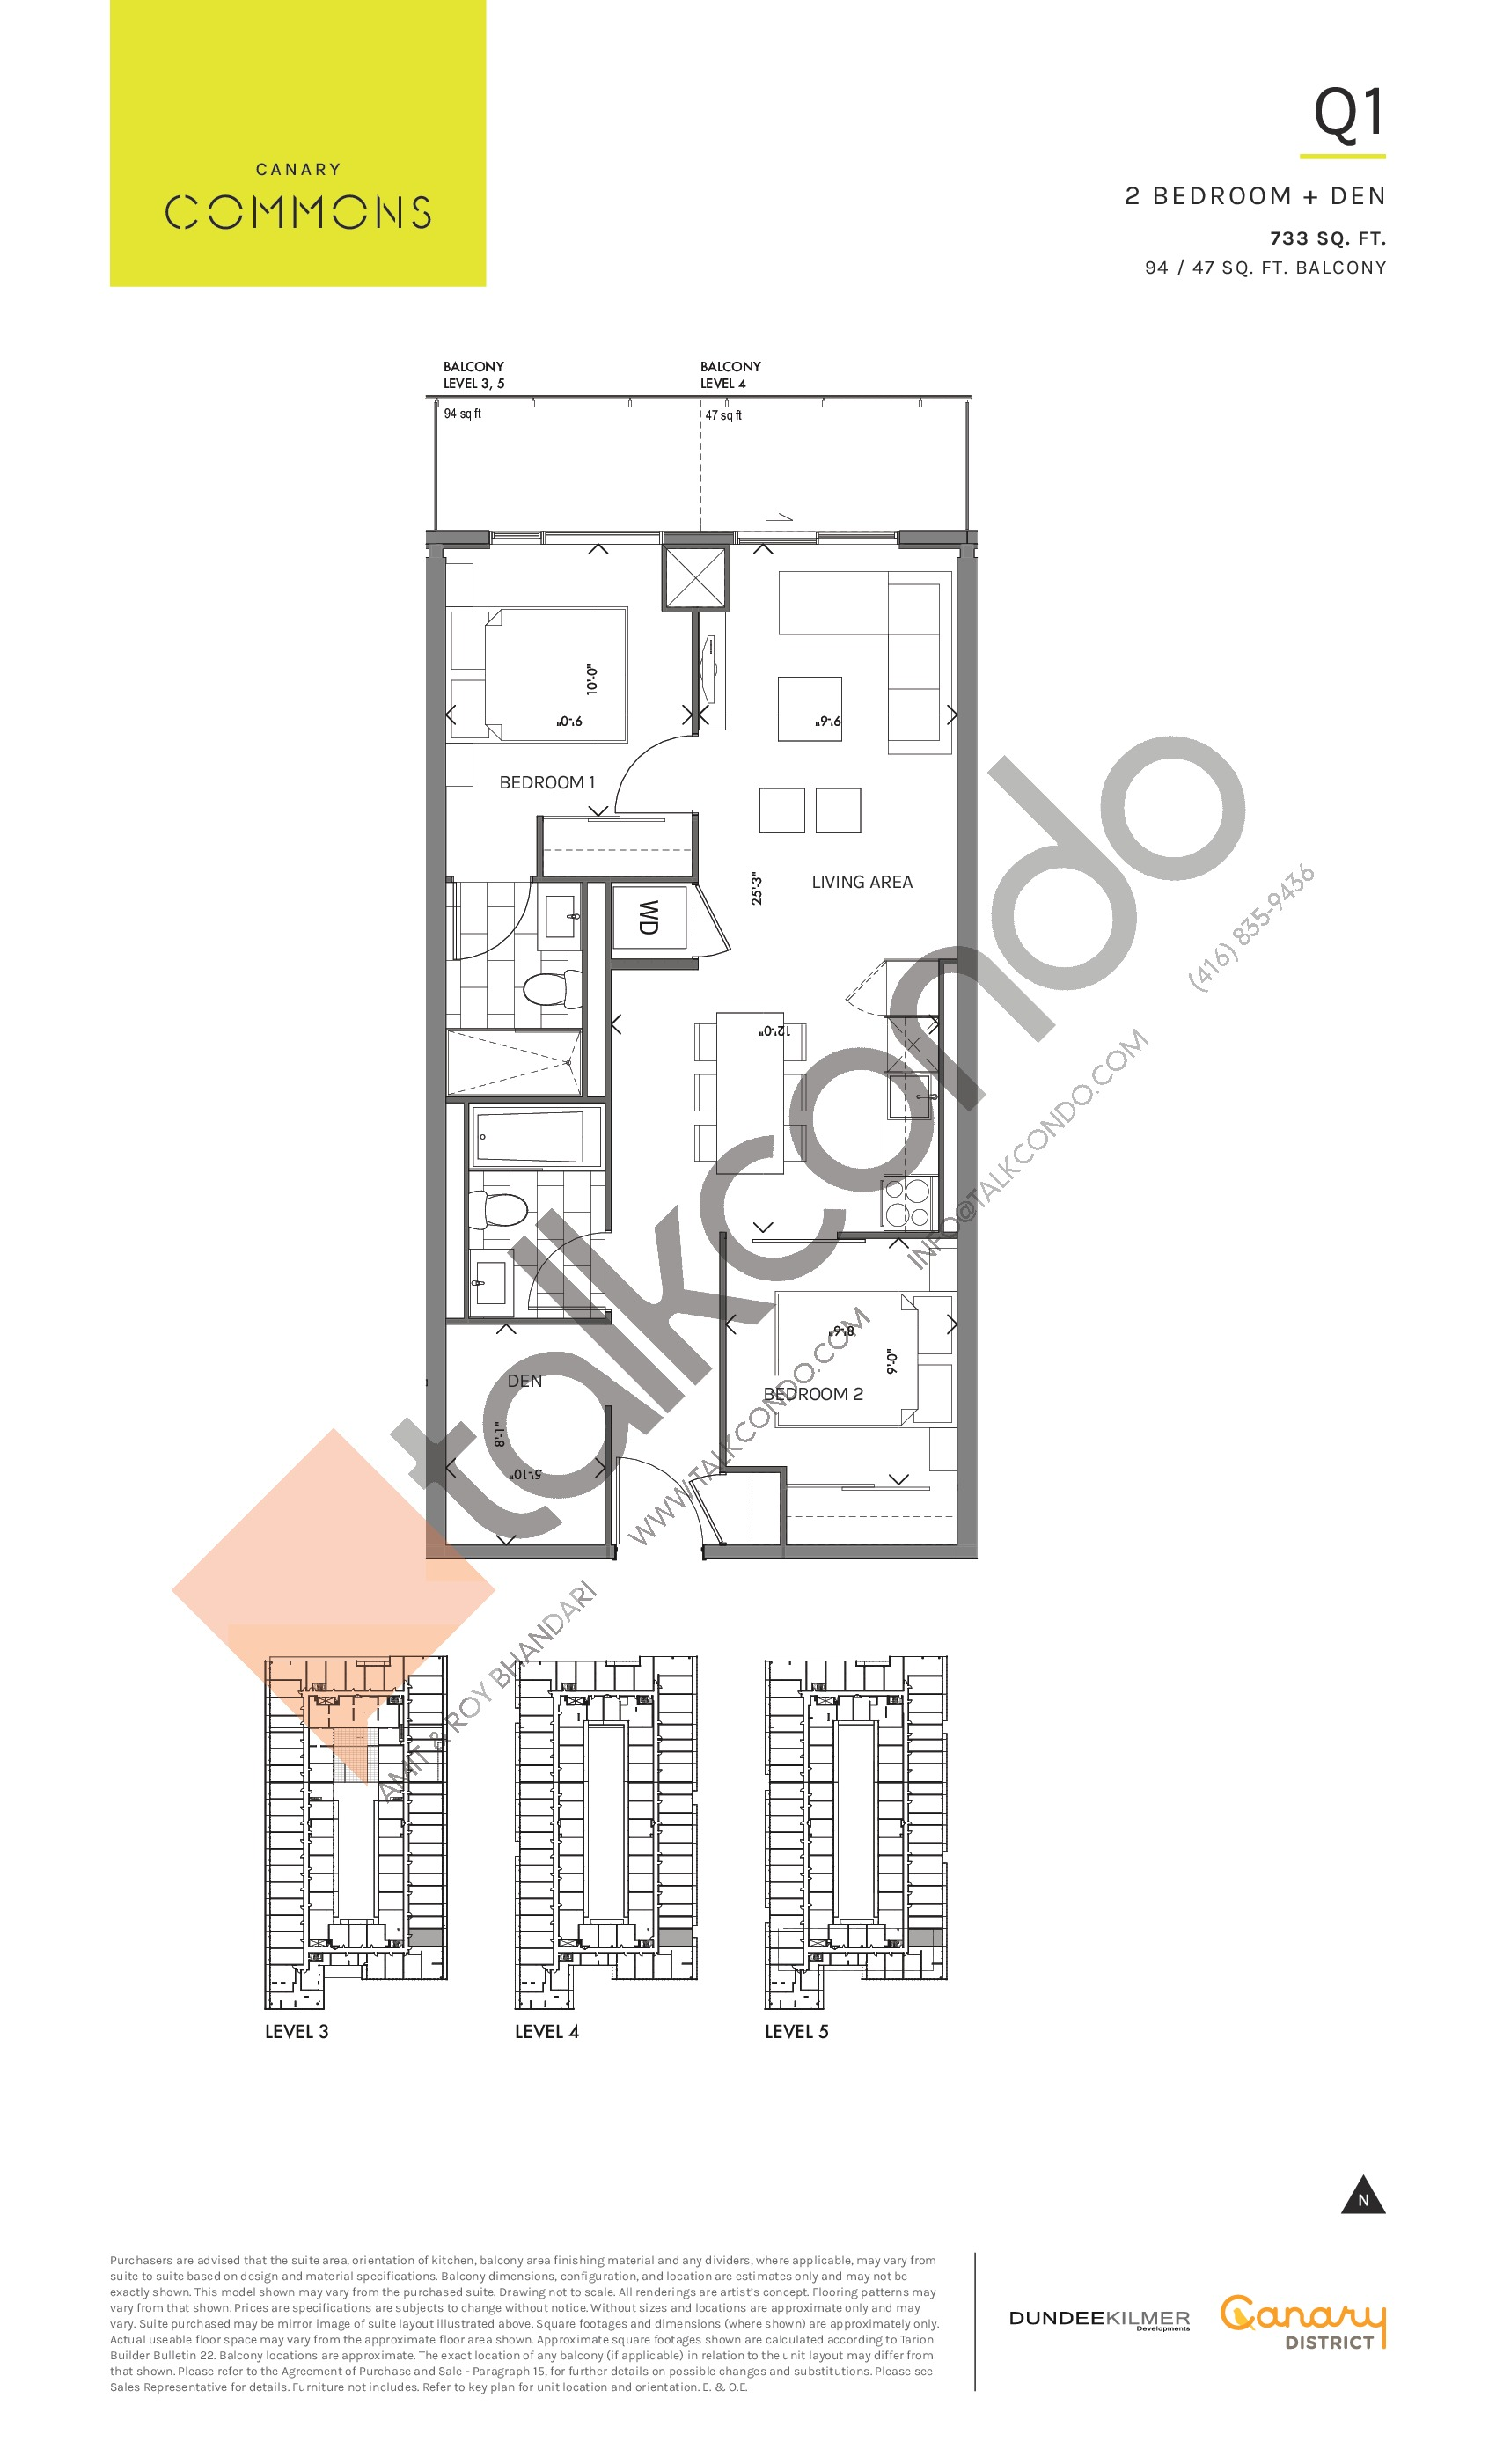 Canary Commons Condos  Floor Plans, Prices, Availability - TalkCondo